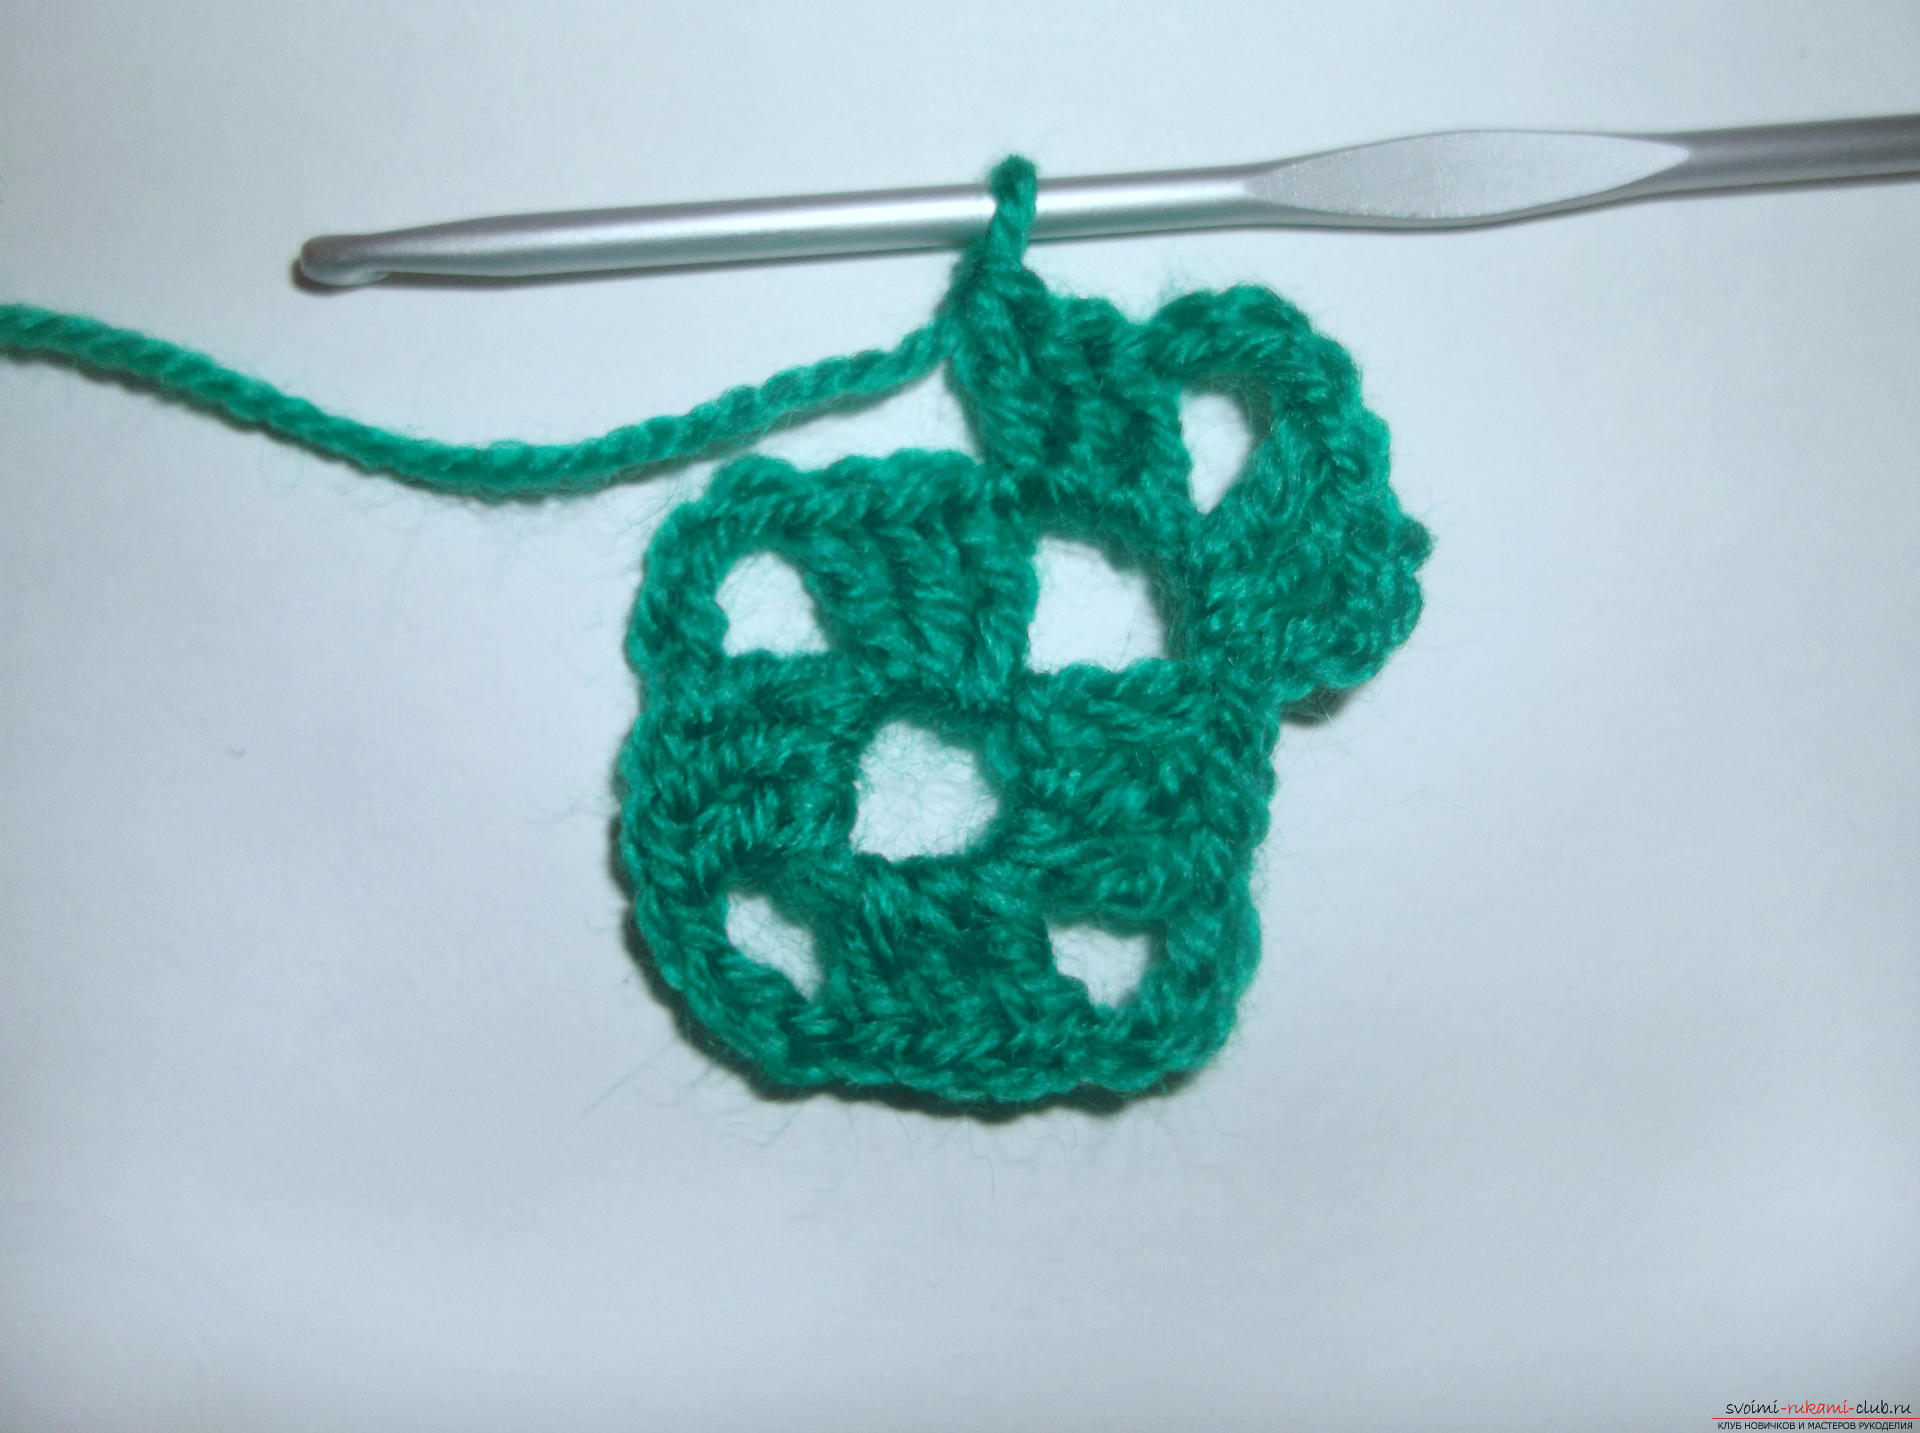 Photo to a lesson on crocheting crochet. Photo №4